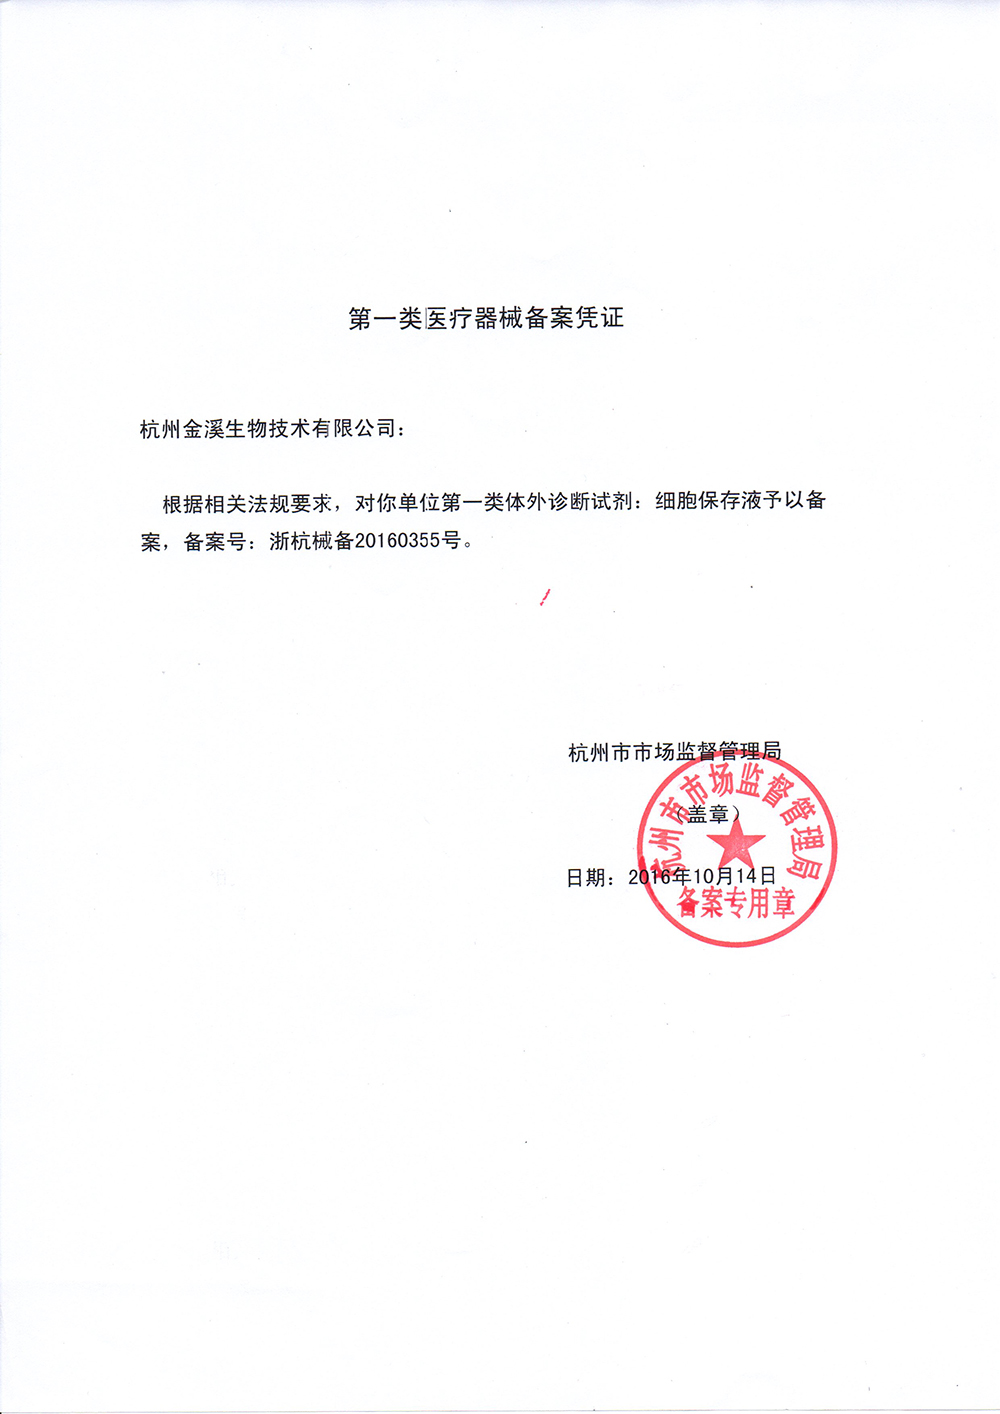 The company obtained two medical device product certificates